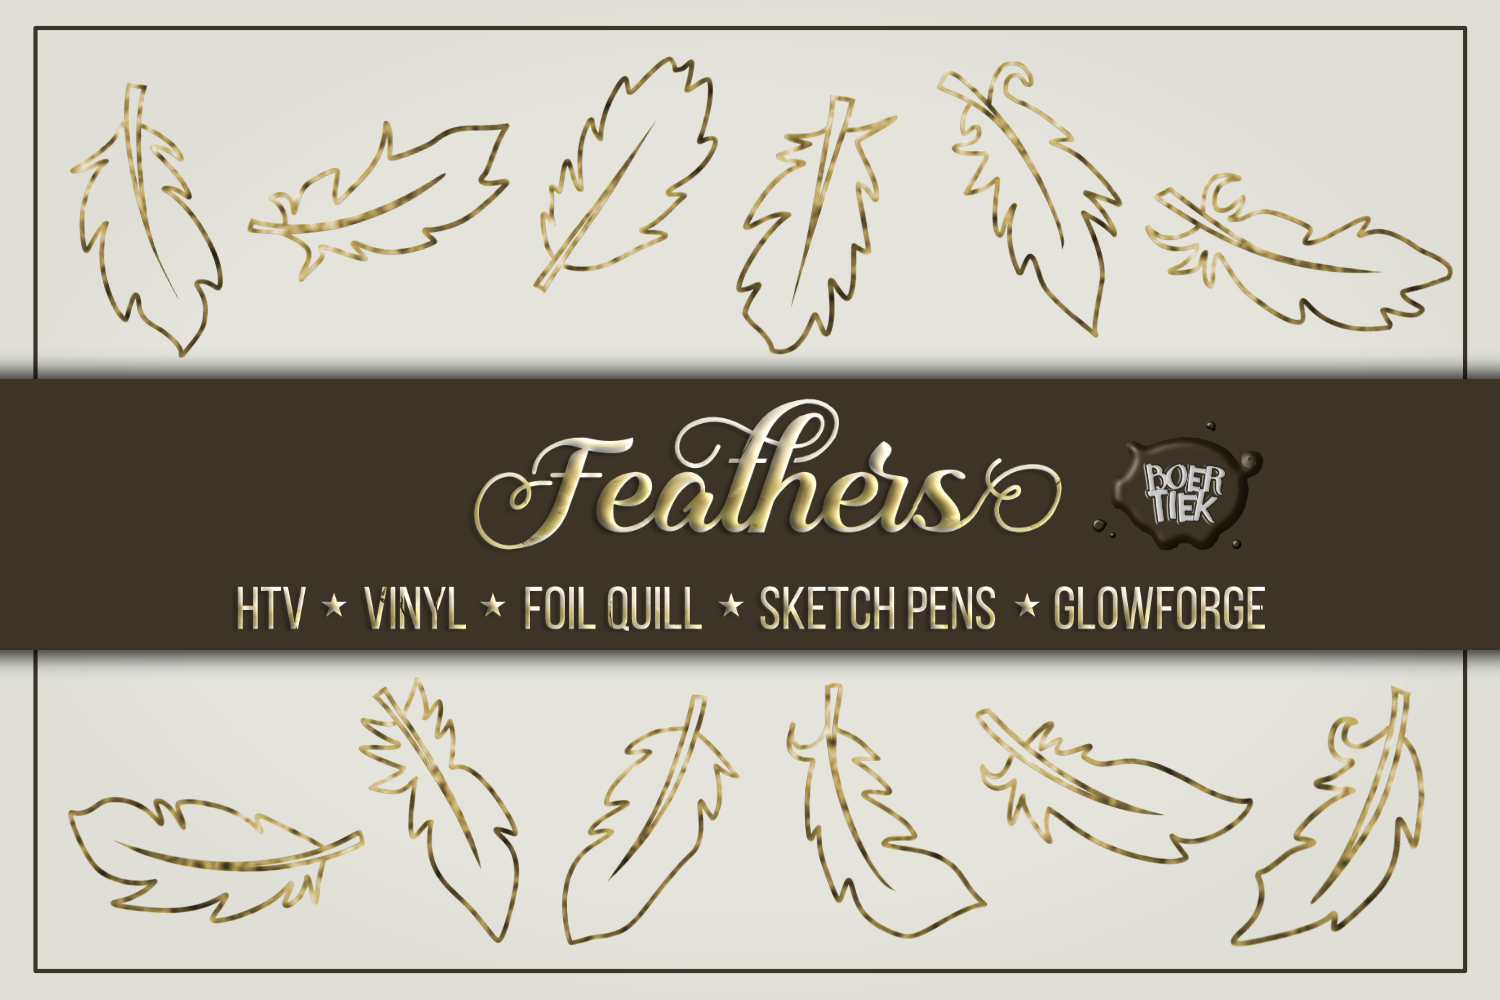 Download Free Feathers Single Line Cut Files Graphic By Boertiek Creative for Cricut Explore, Silhouette and other cutting machines.